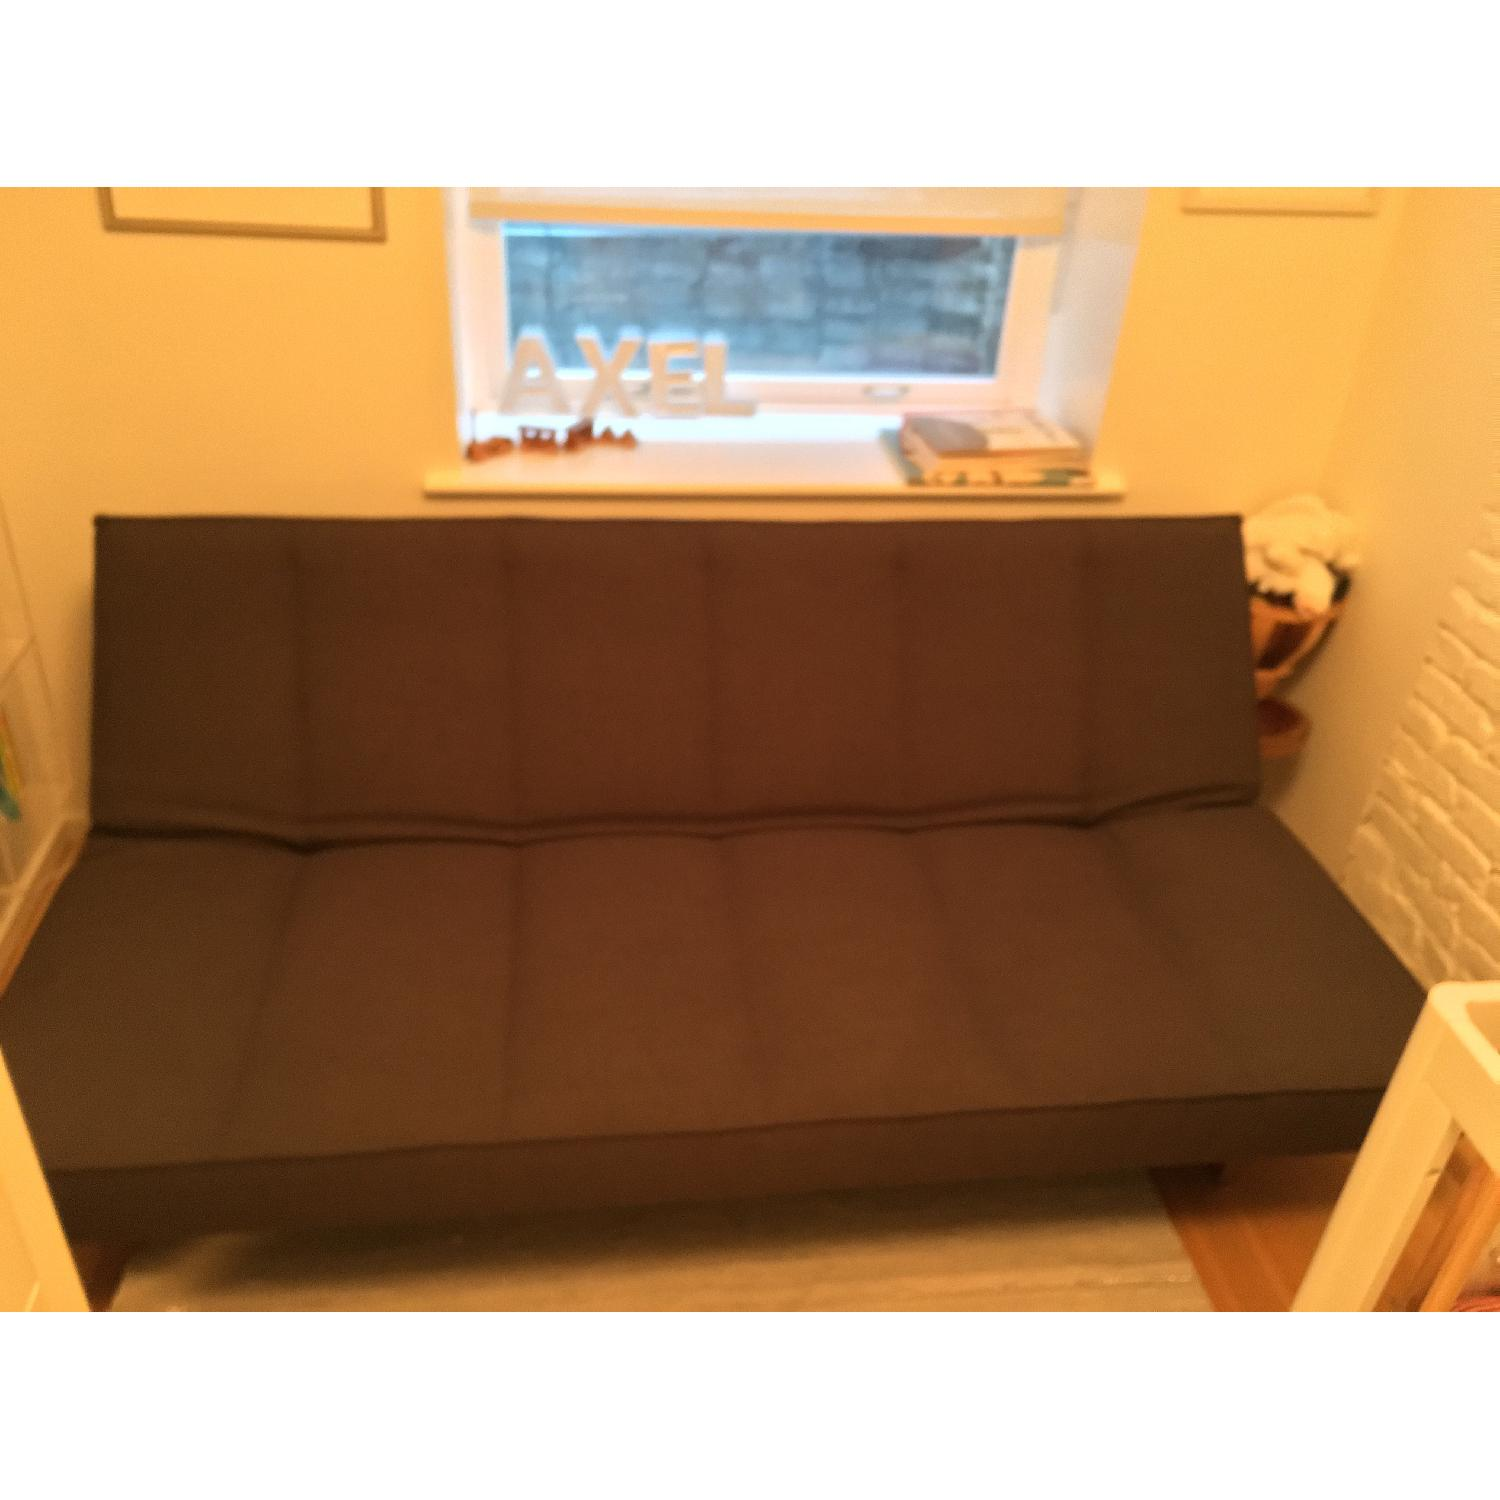 CB2 Flex Gravel Sleeper Sofa - image-3